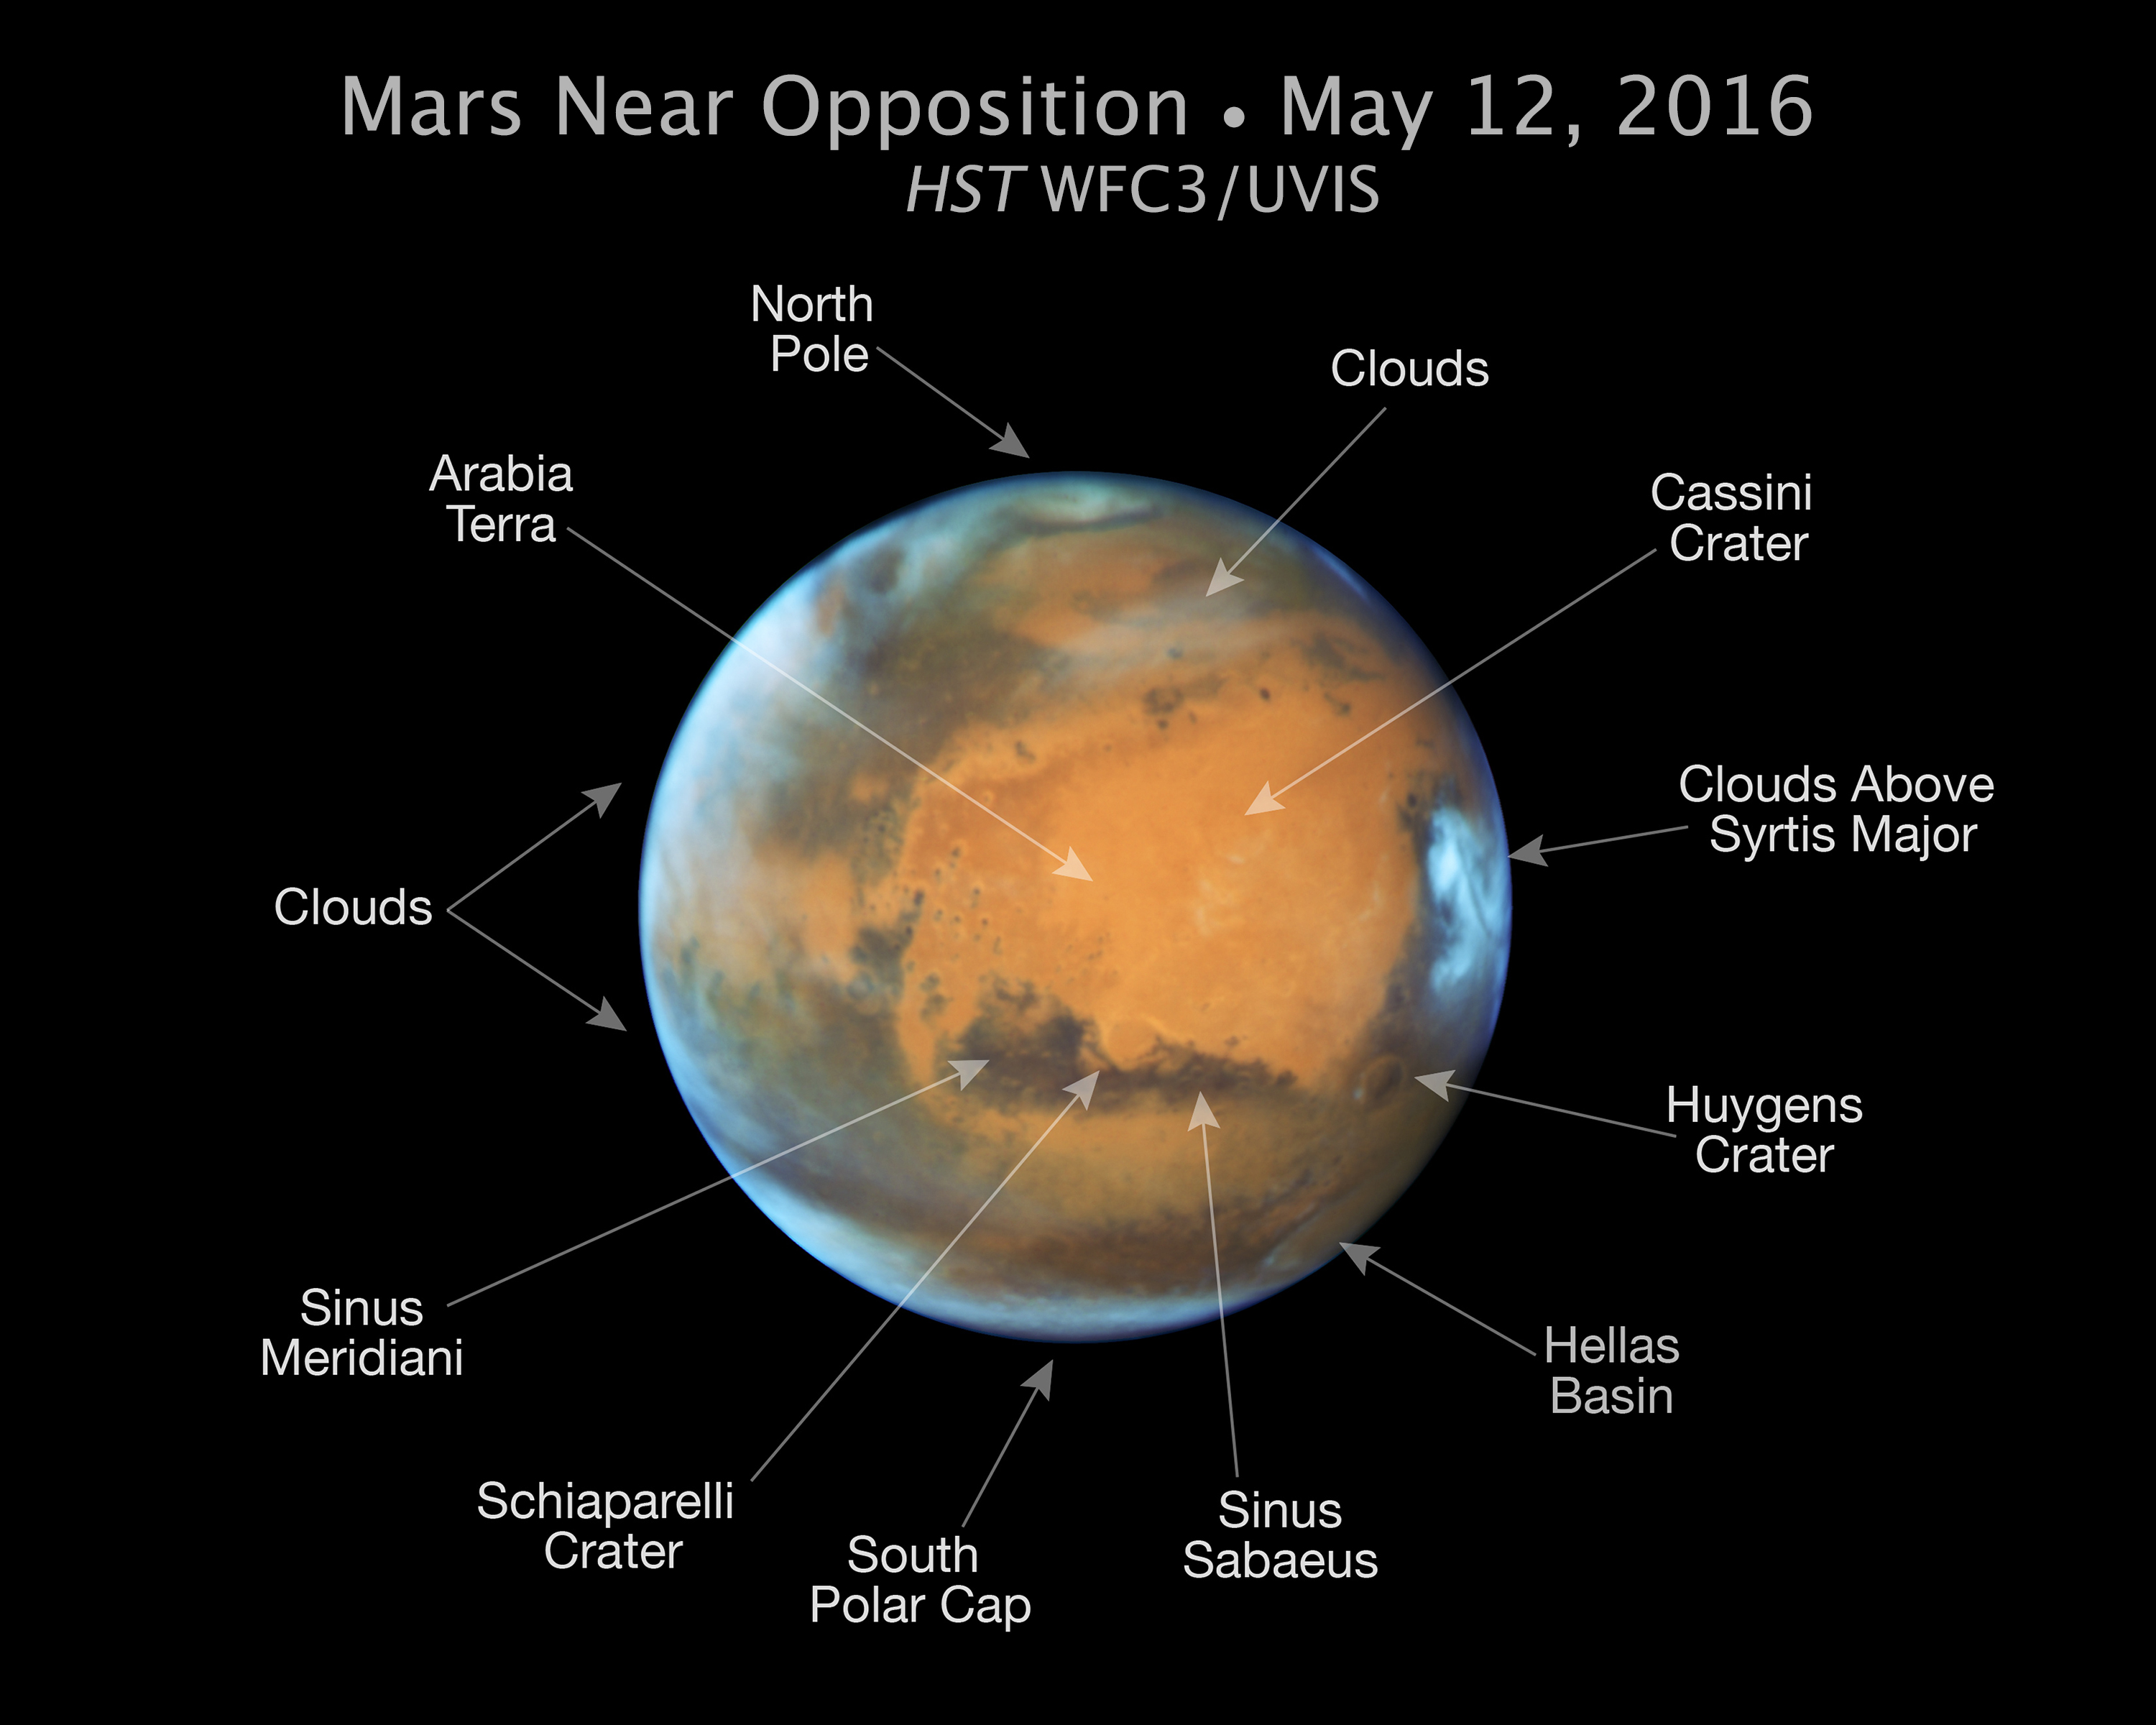 s hubble space telescope close up of the red planet mars nasa mars image major features indicated